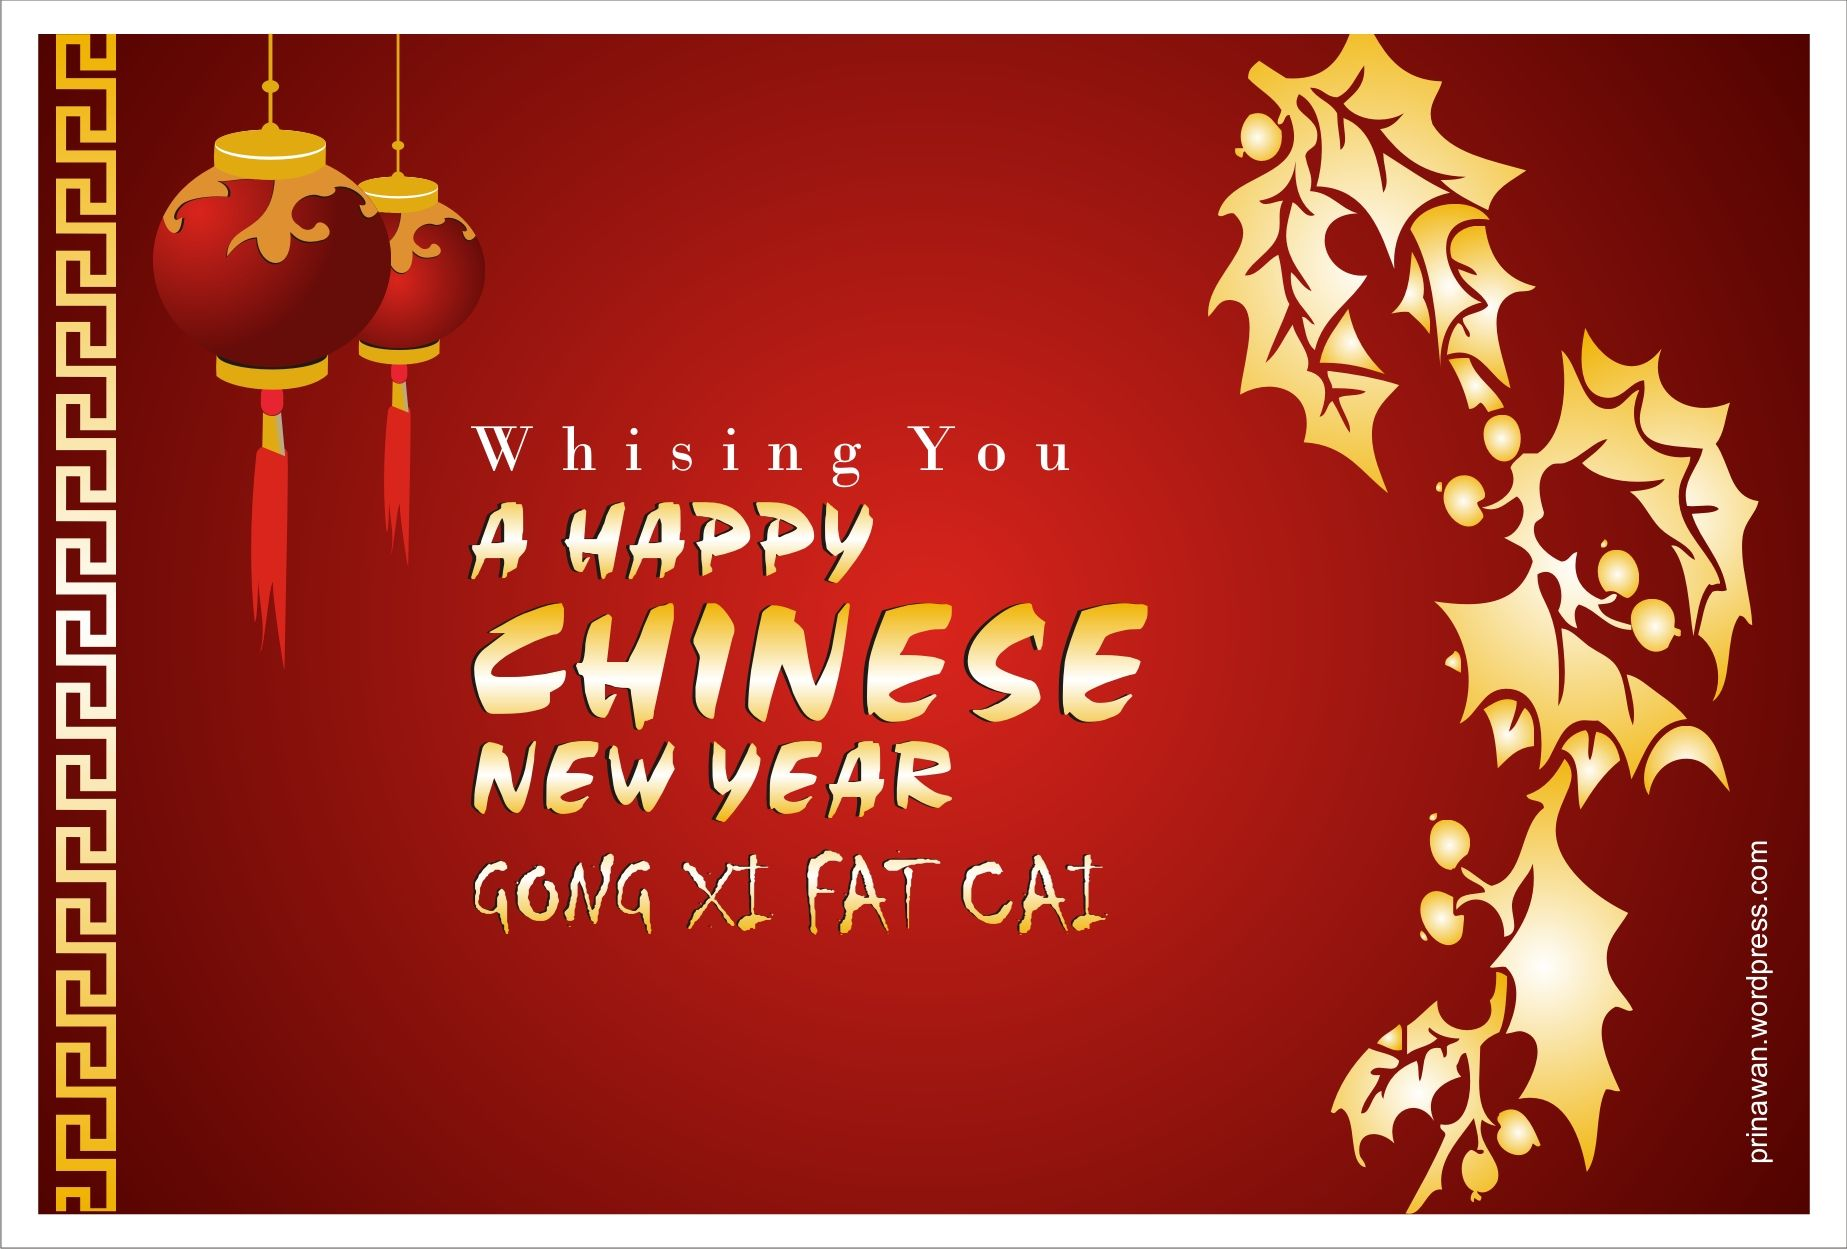 History Of Chinese New Year Chinese New Year Greeting Chinese New Year Card Happy New Year Images